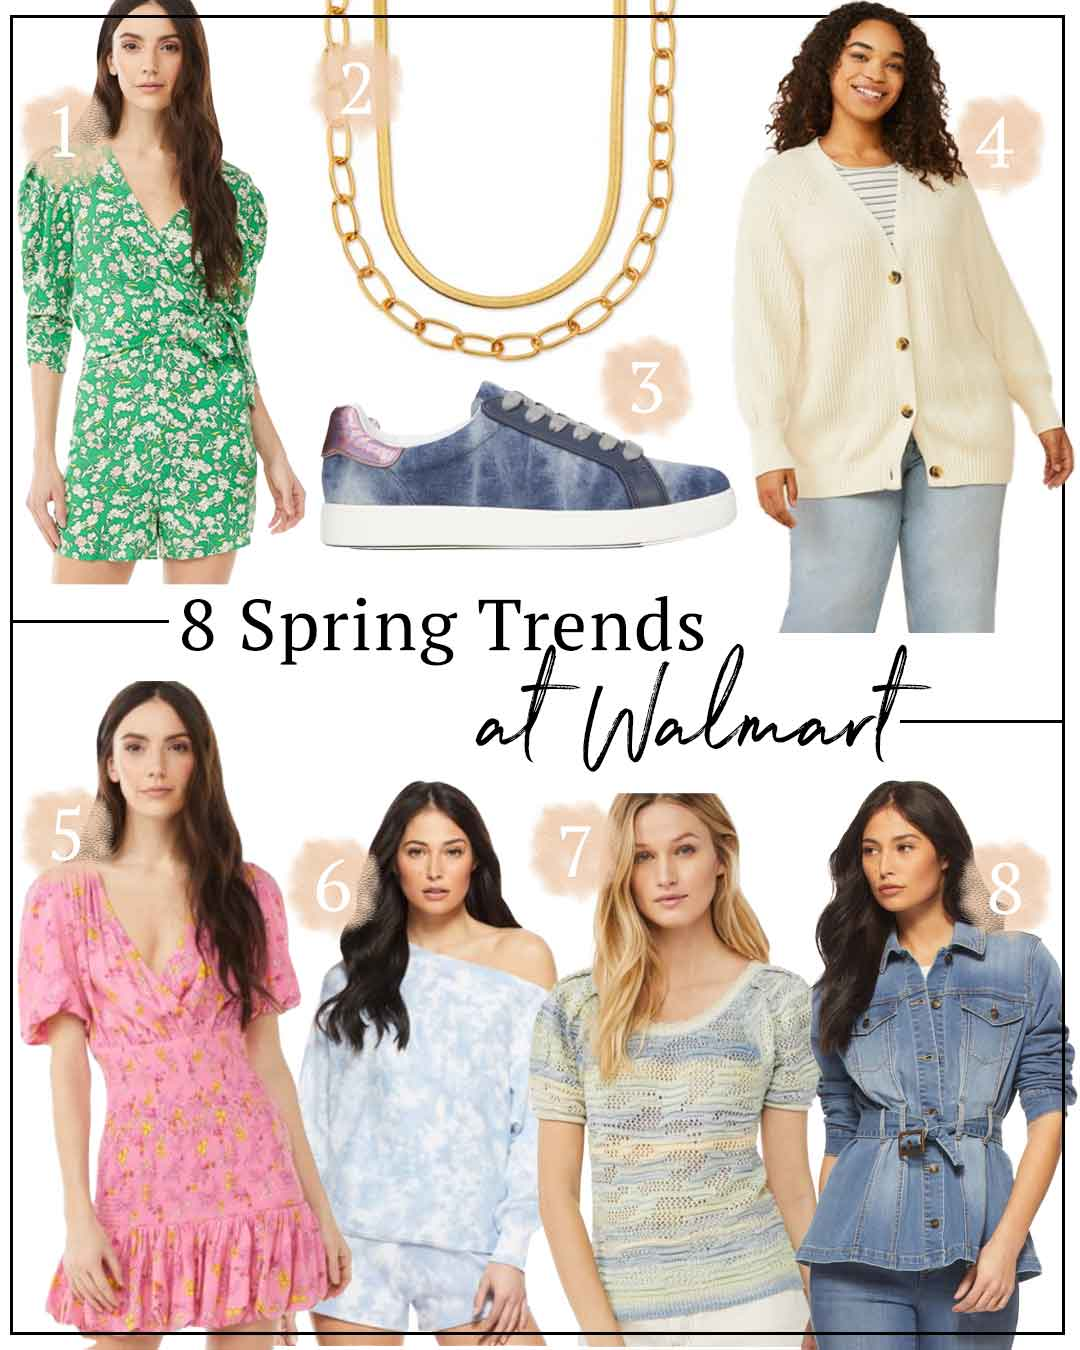 8 Spring Trends at Walmart | Fresh Florals, Totally Tie-Dye, Layered Jewelry and More